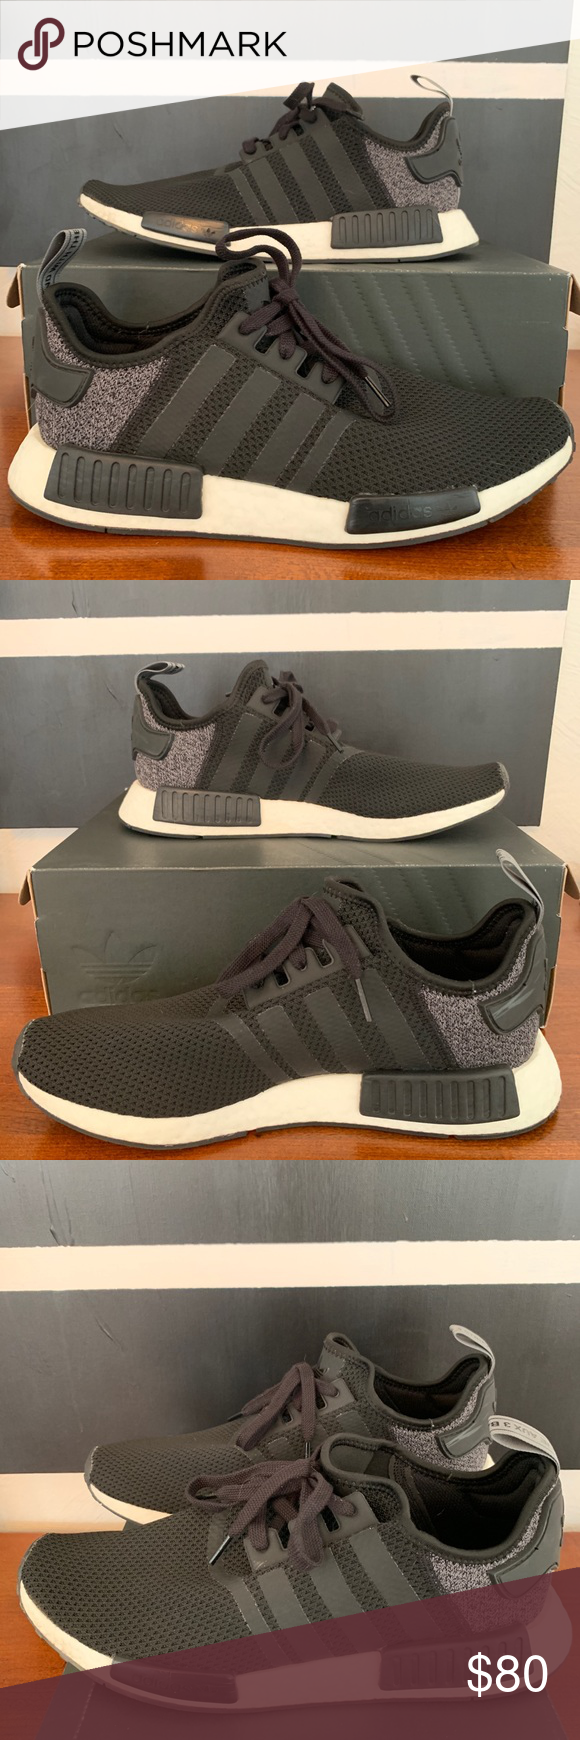 c6821003e20c6 JD Sports Exclusive Adidas Originals NMD R1 Sz12.5 Purchased at JD in  London.